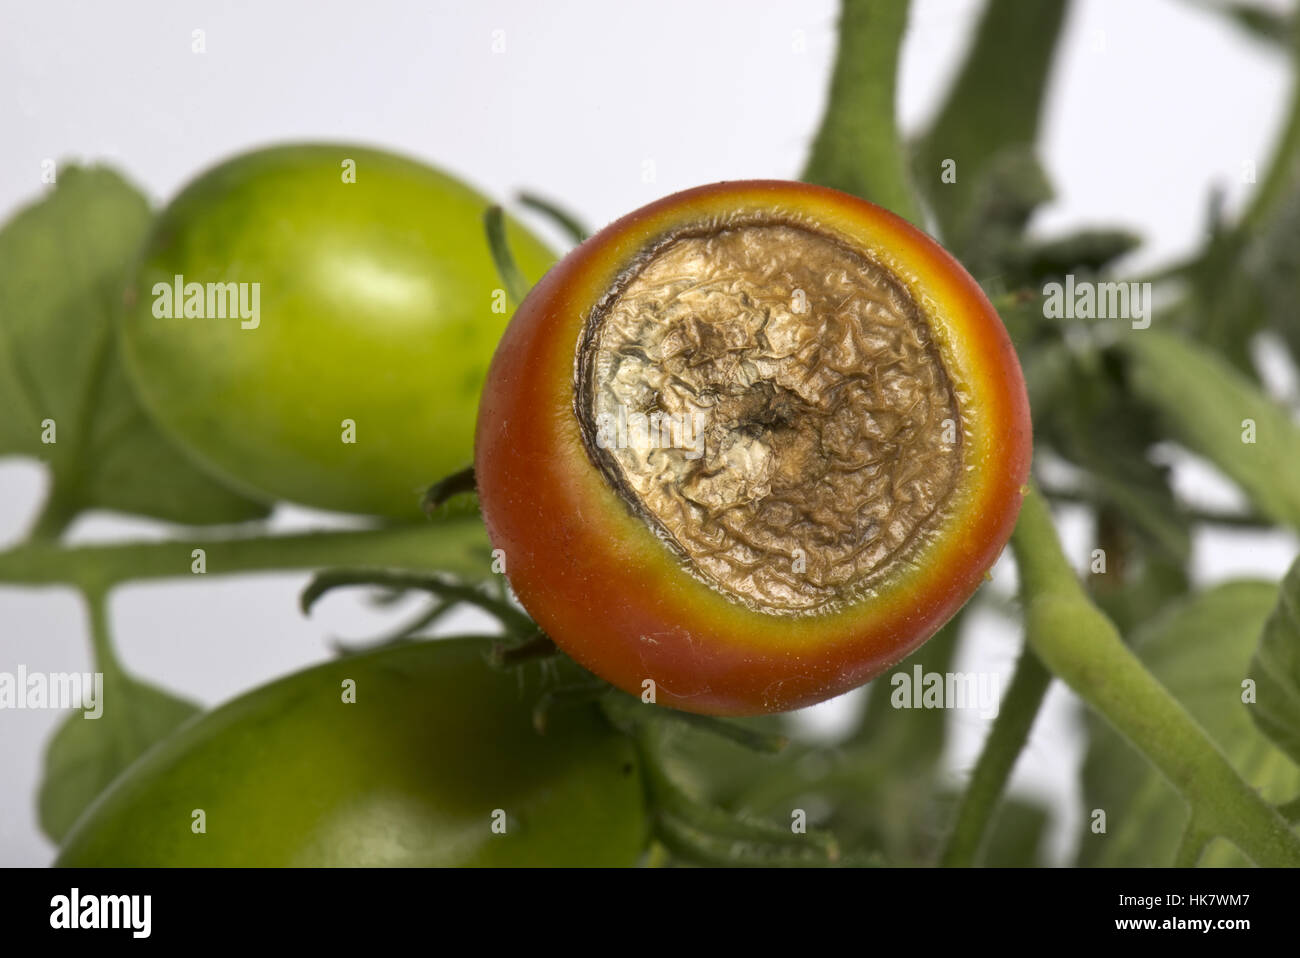 Blossom end rot, calcium deficiency symptoms on a glasshouse grown tomato fruit - Stock Image